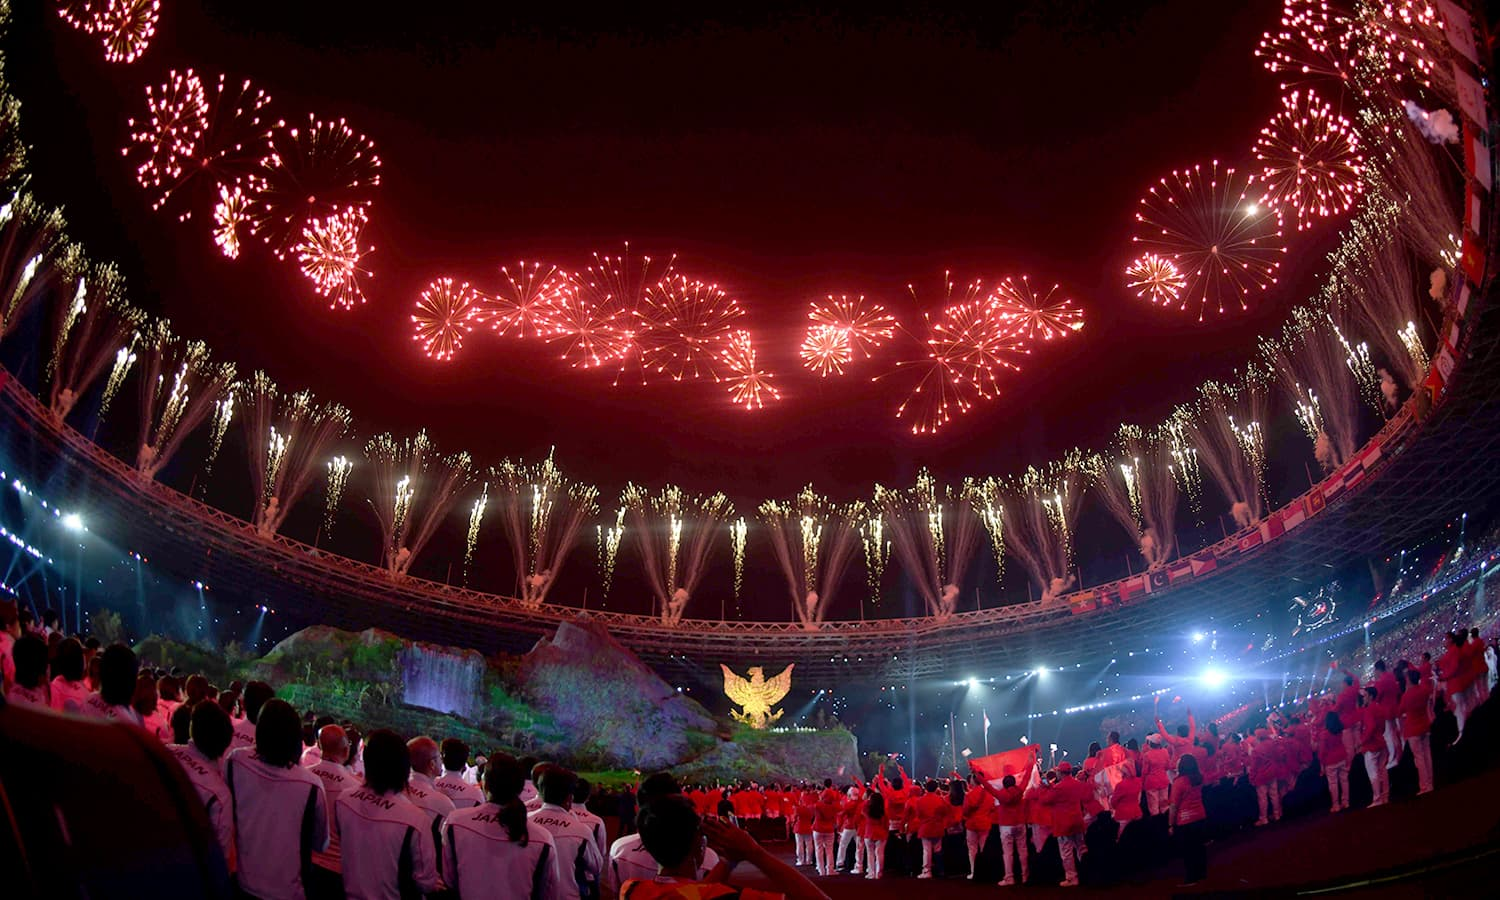 Delegates look up to witness a breathtaking fireworks display during the opening ceremony at the Gelora Bung Karno stadium in Jakarta. —AFP